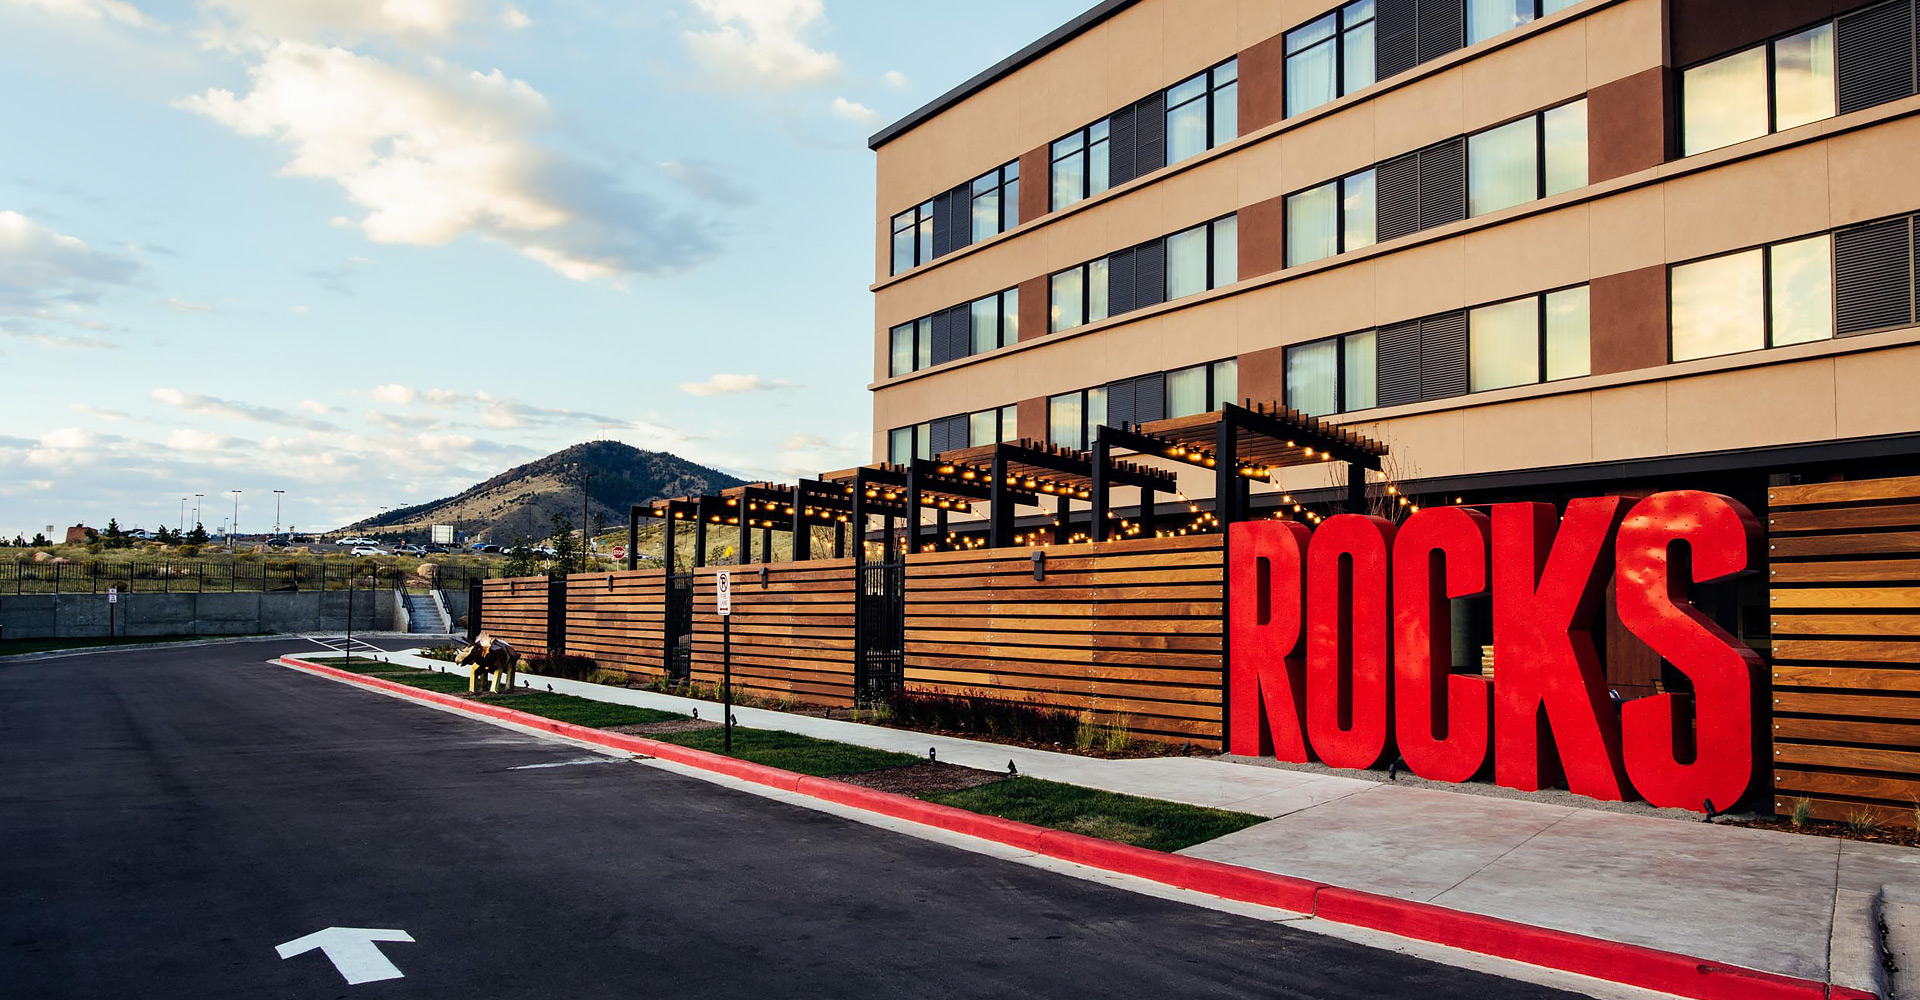 exterior of hotel with oversized sign that says Red Rocks